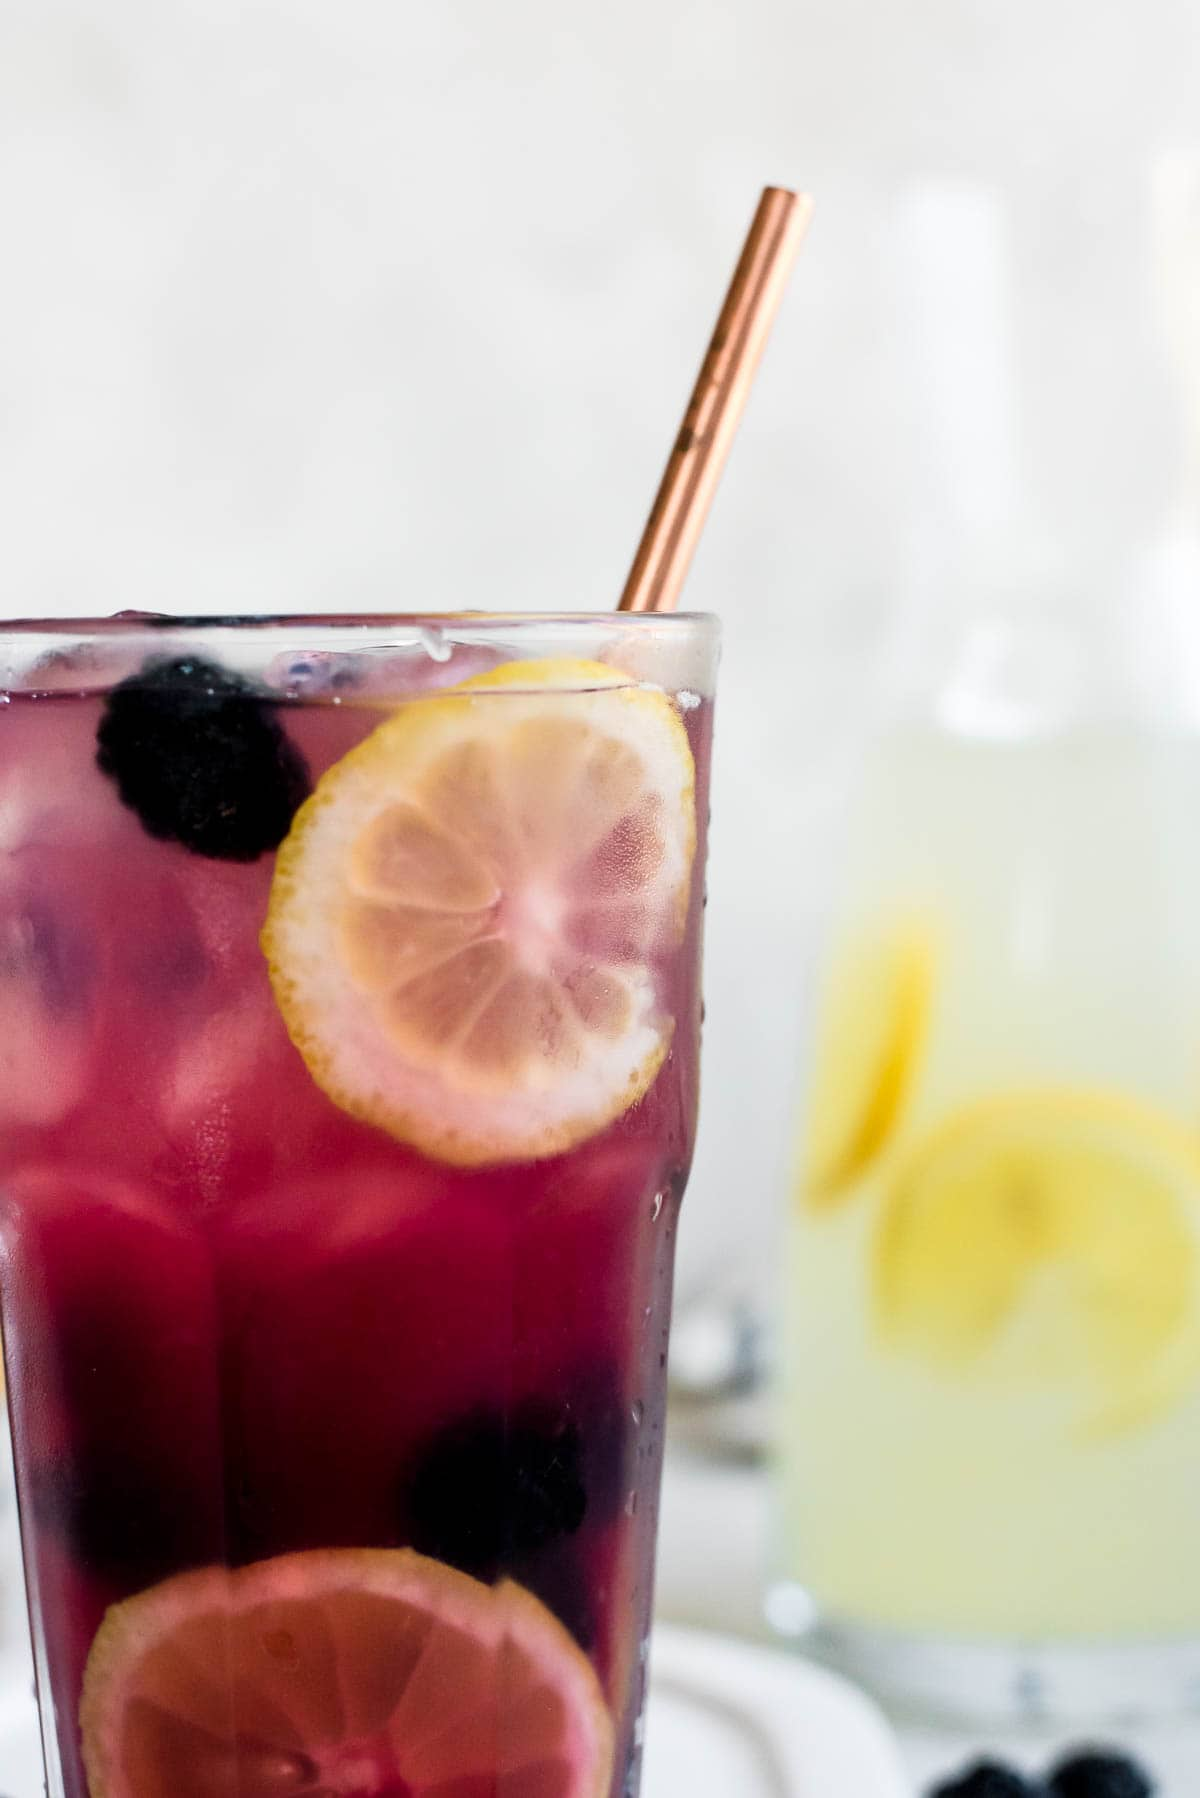 close up of glass of blackberry lemonade